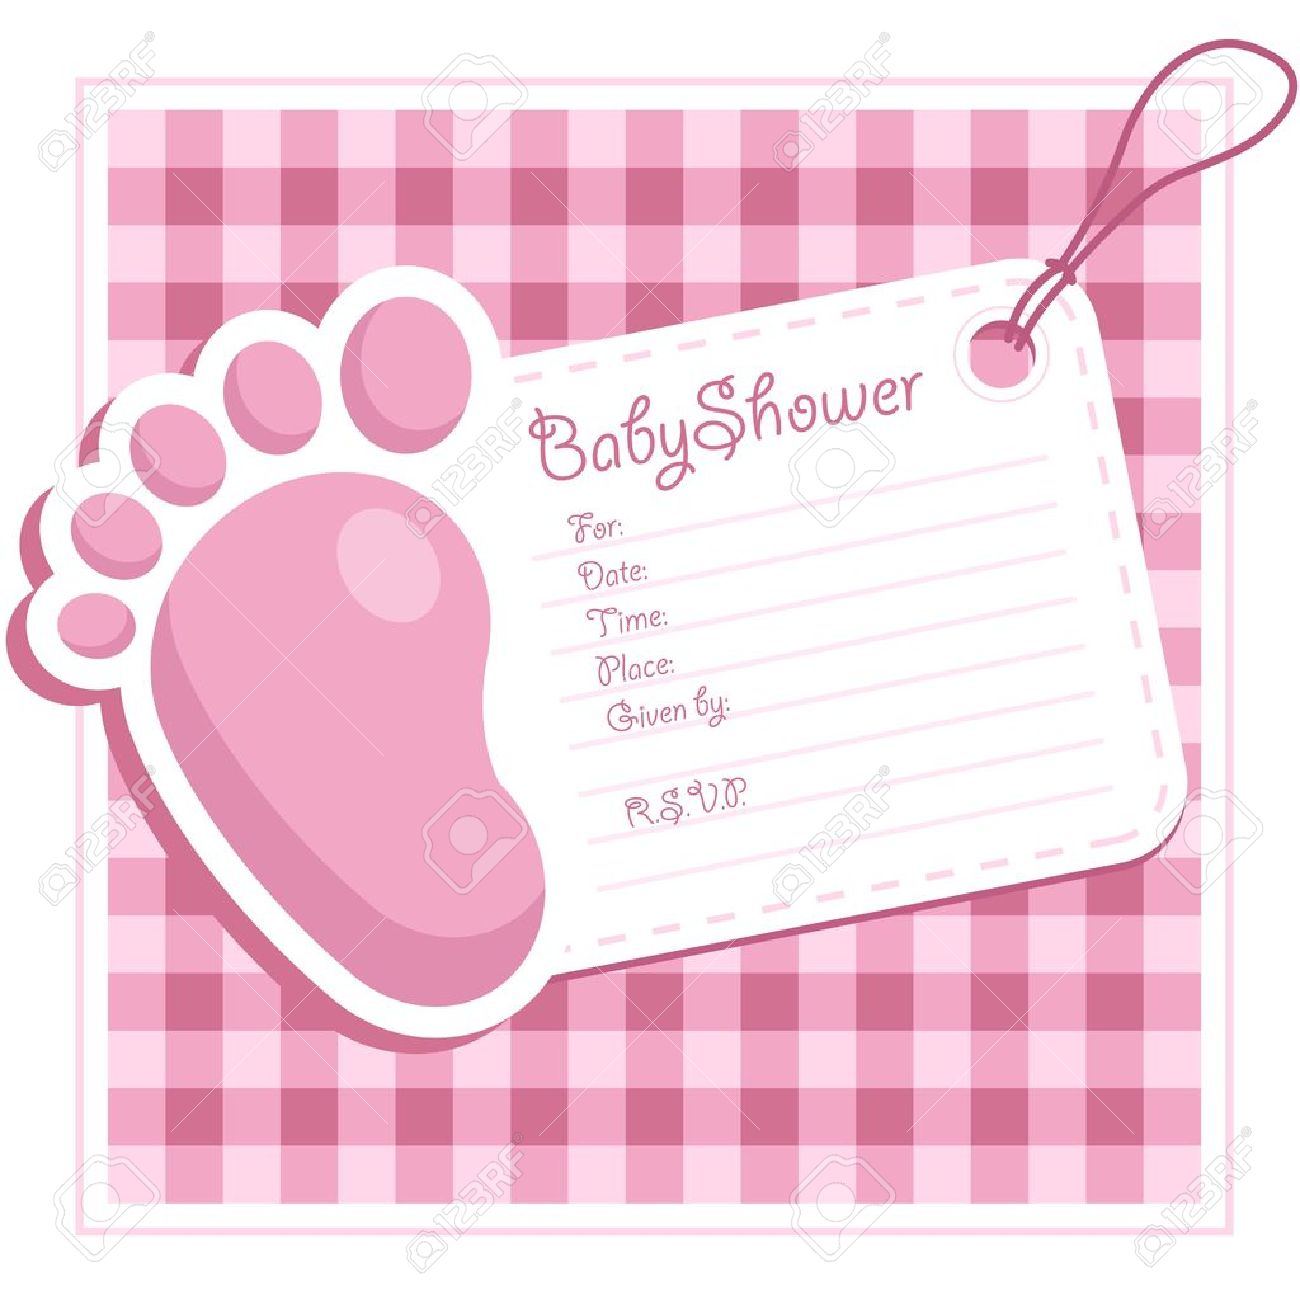 Pink Baby Shower Invitation Royalty Free Cliparts, Vectors, And ...